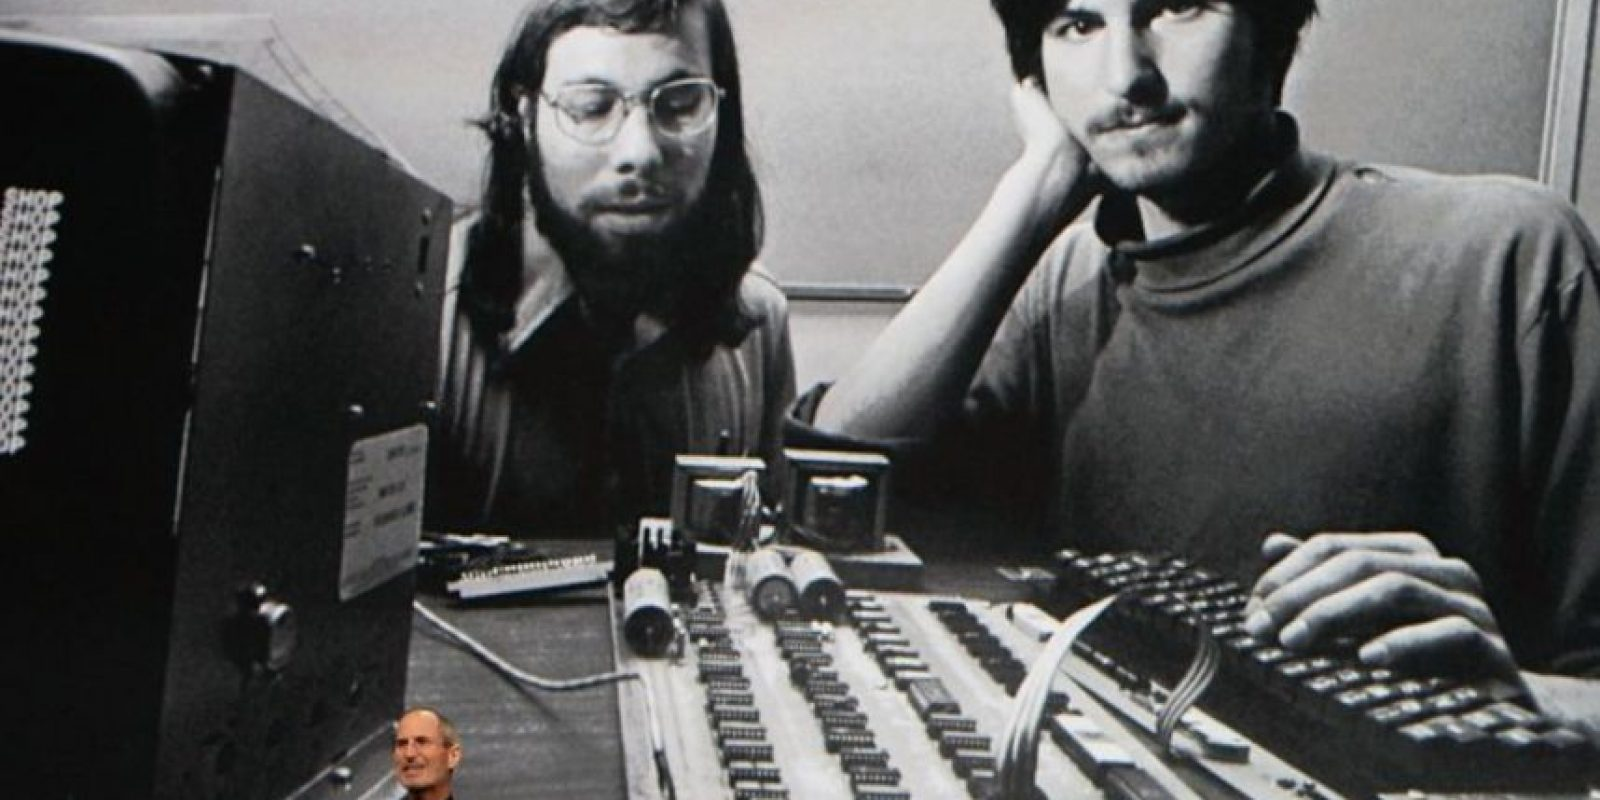 1976: Cofunda Apple con Steve Wozniak y produce la Apple I. Foto: Getty Images